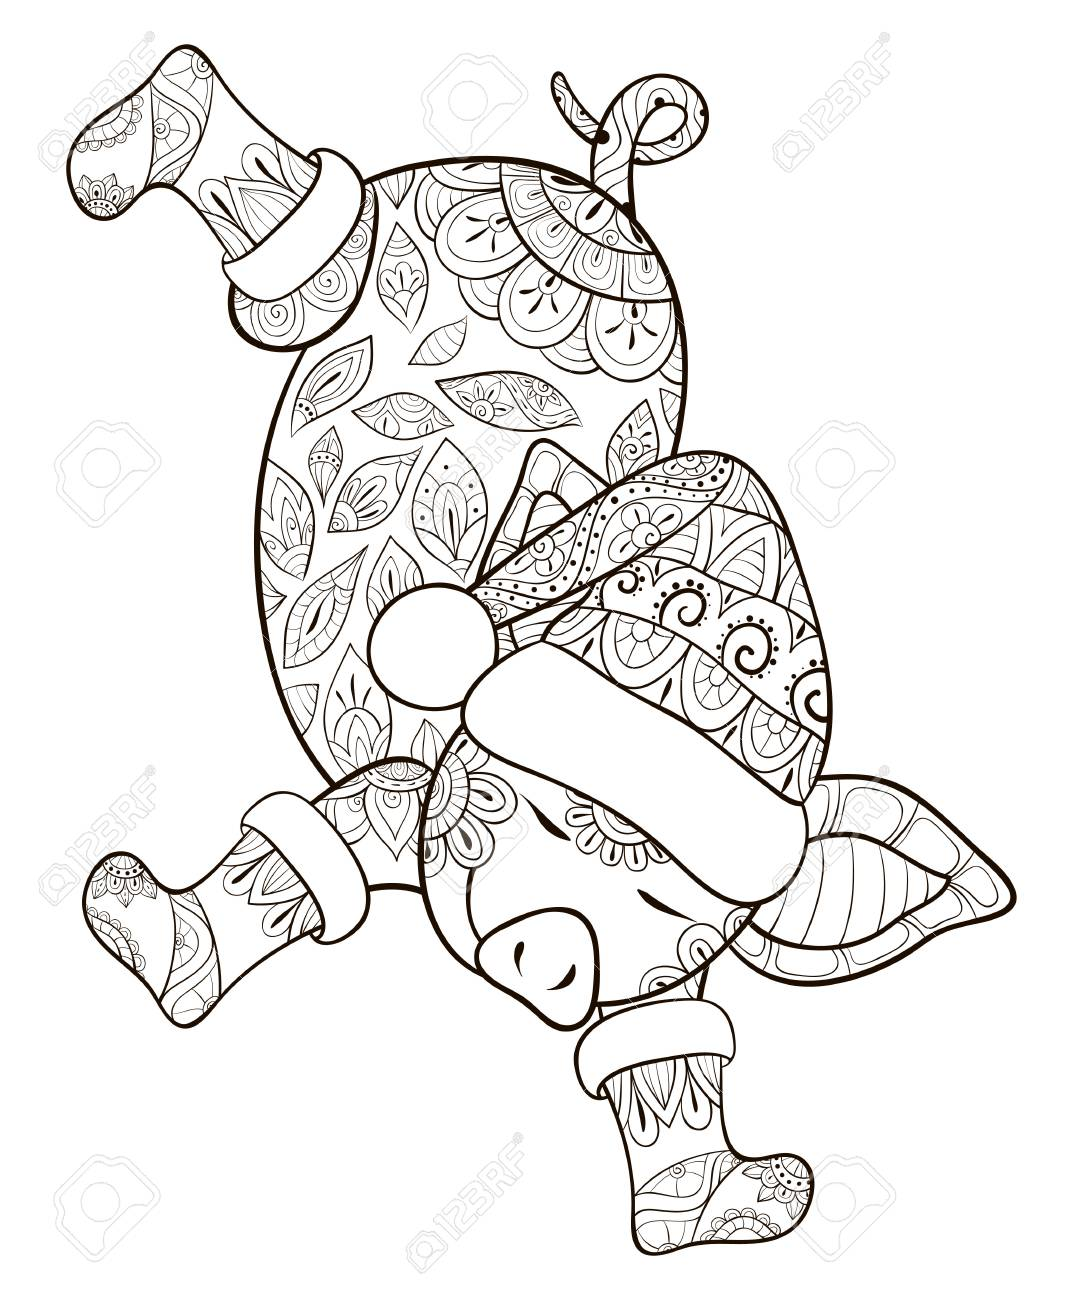 Christmas Boots Drawing.A Cute Dancing Pig Wearing A Christmas Cap And Boots With Zen